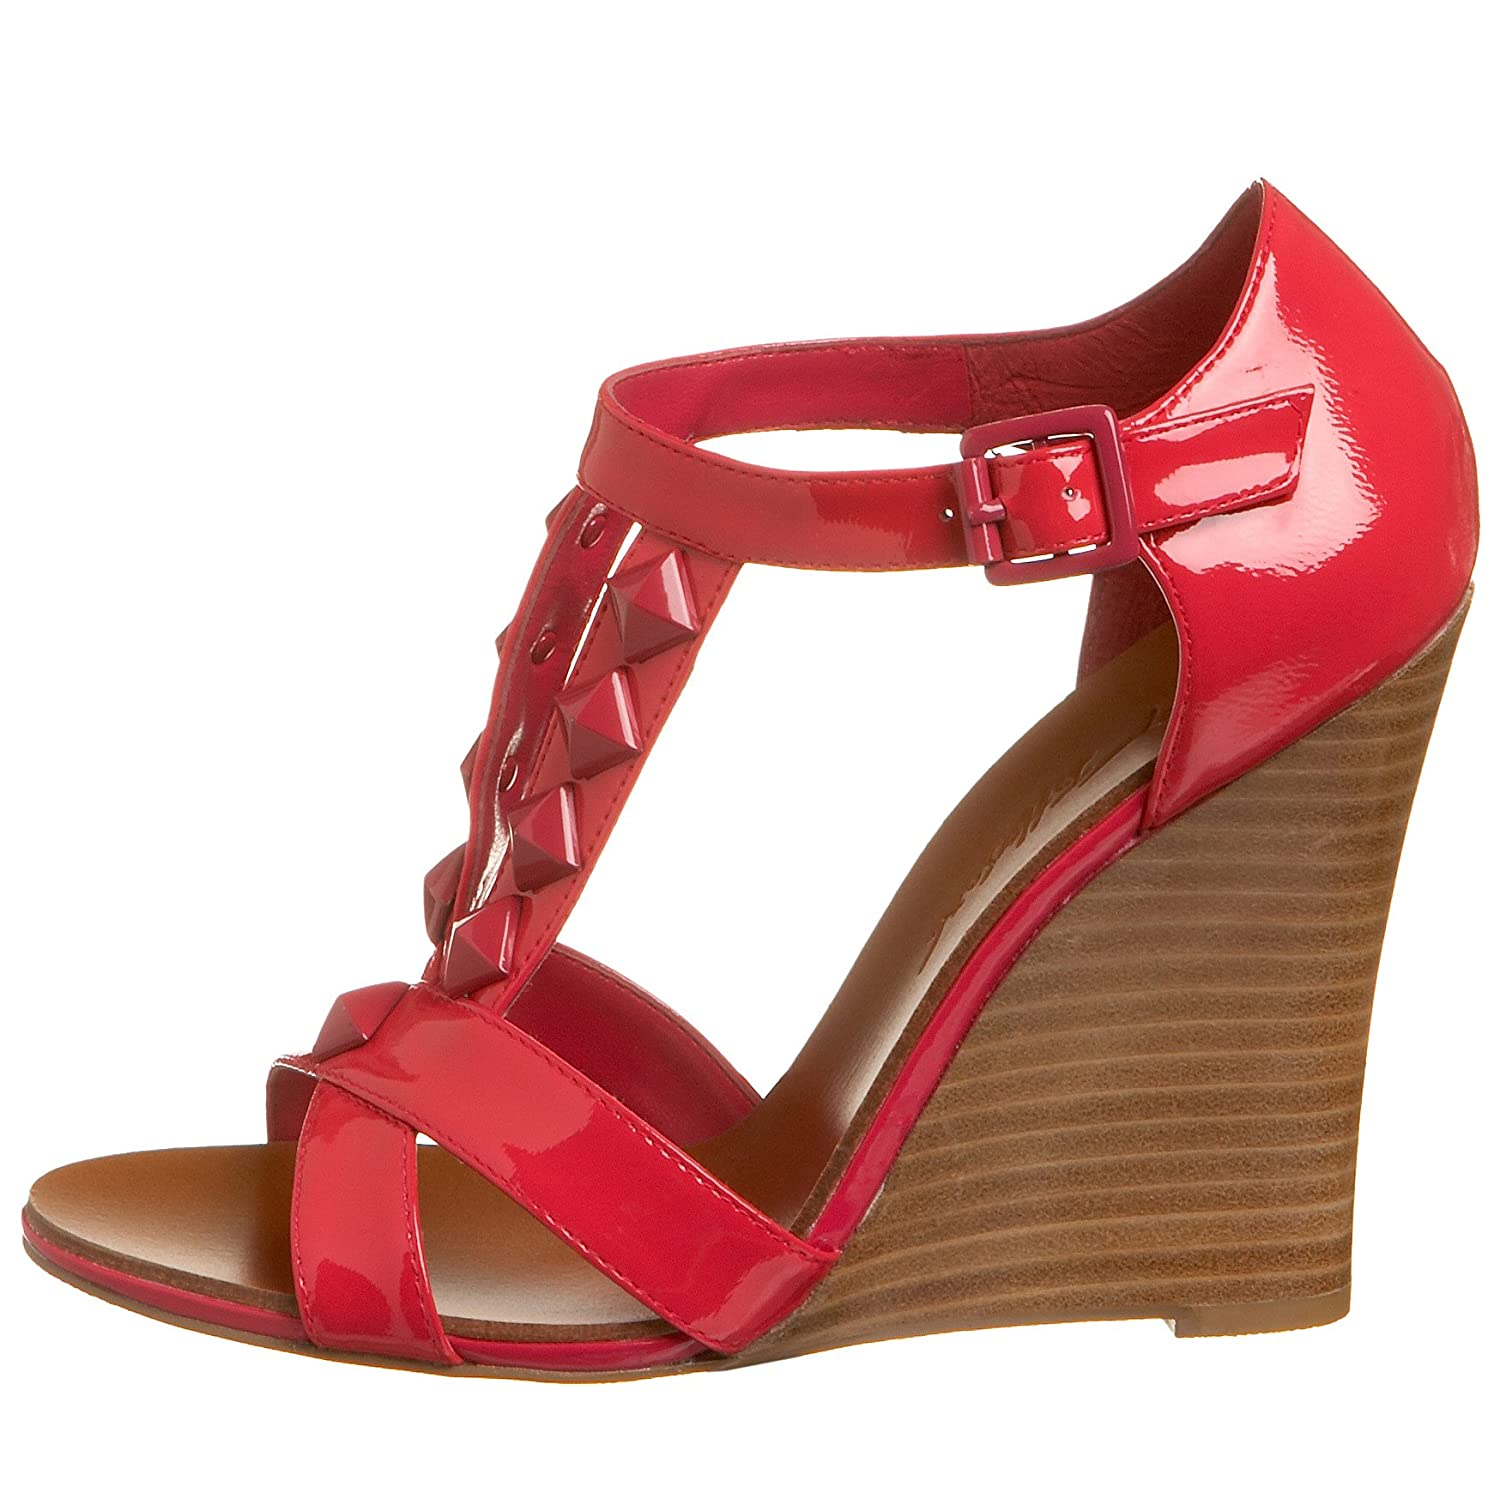 Betsey Johnson Deborah Wedge Sandal from endless.com